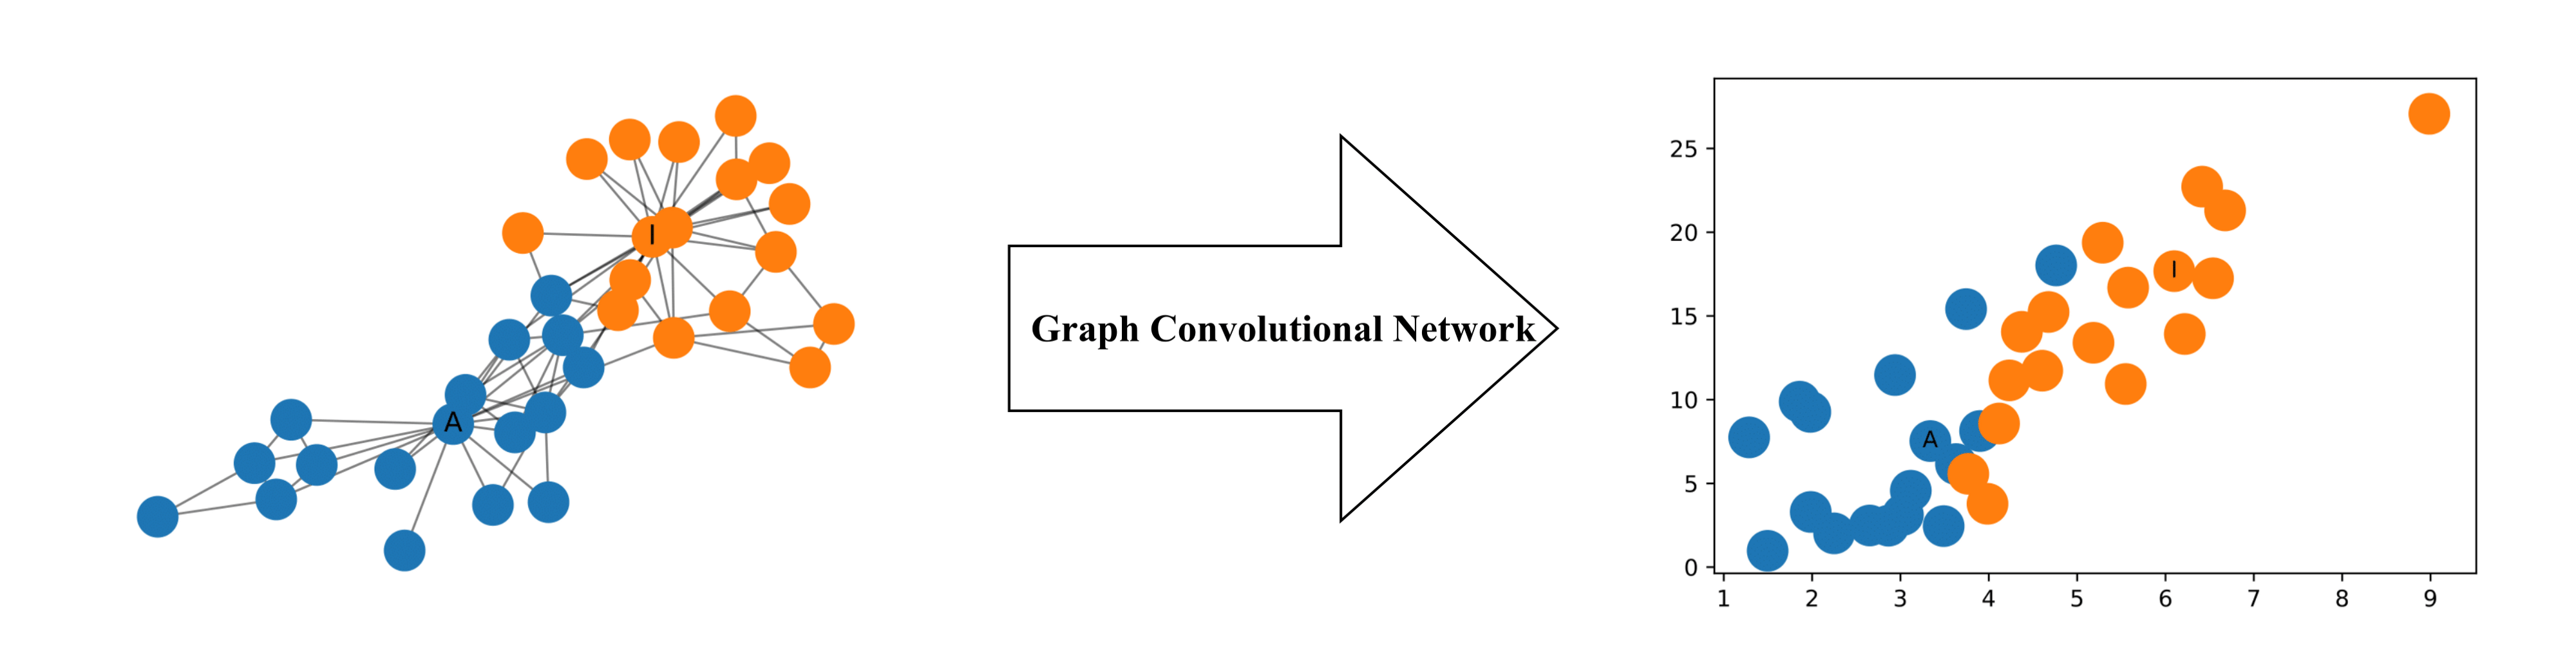 How to do Deep Learning on Graphs with Graph Convolutional